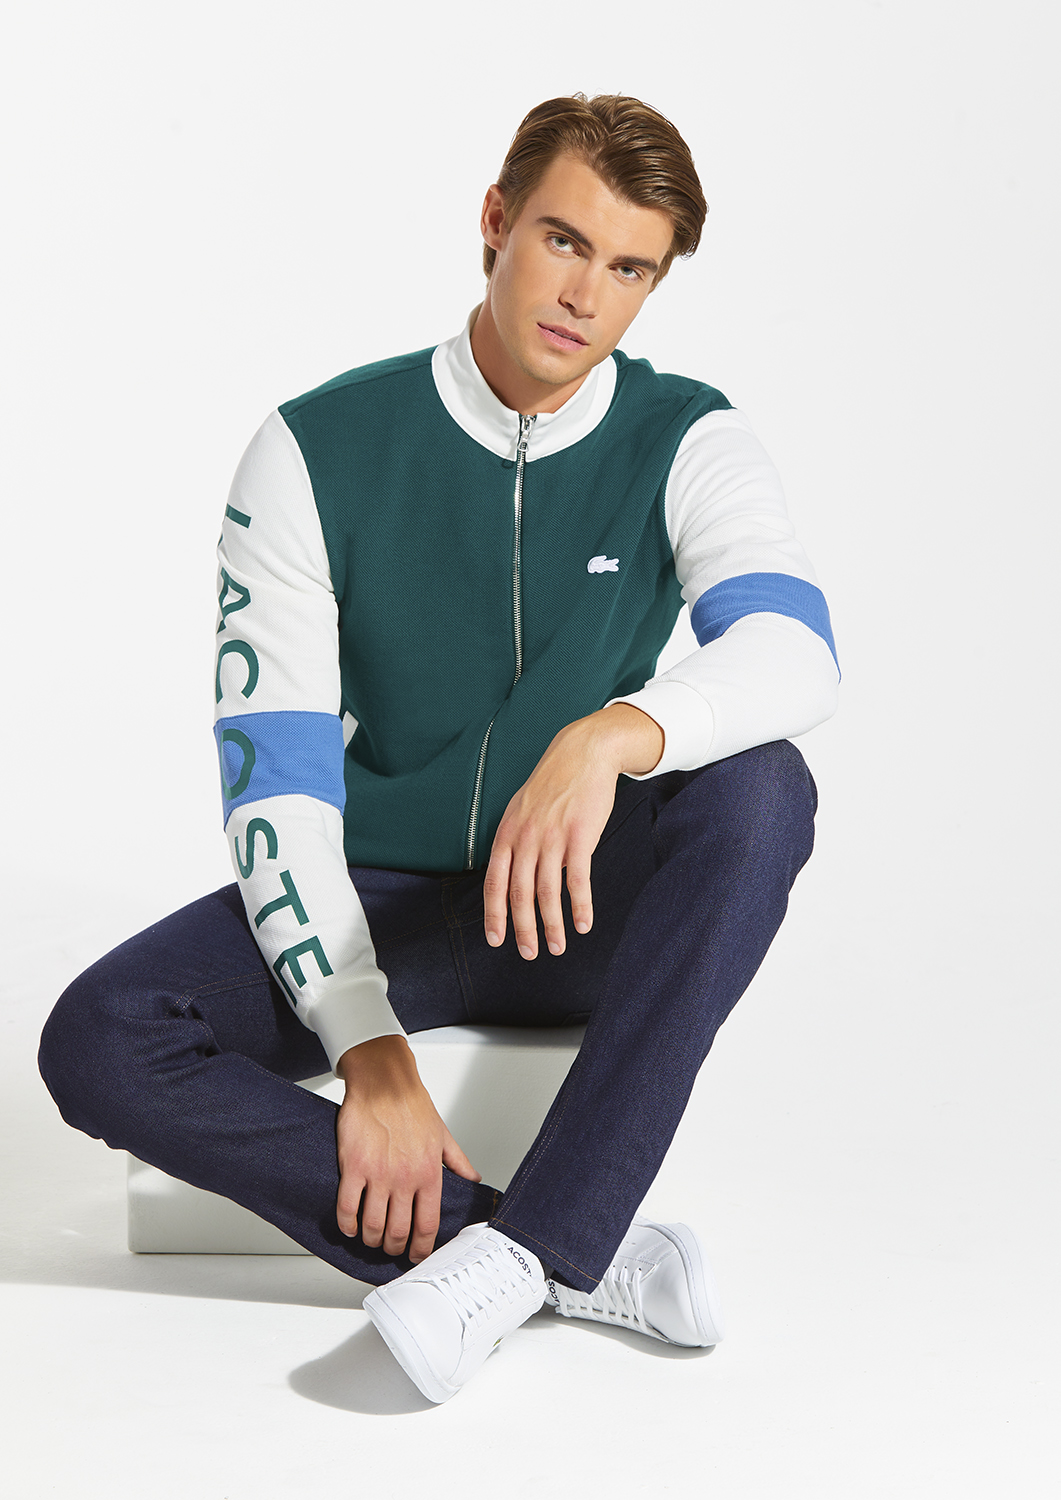 Lacoste Menswear Photography